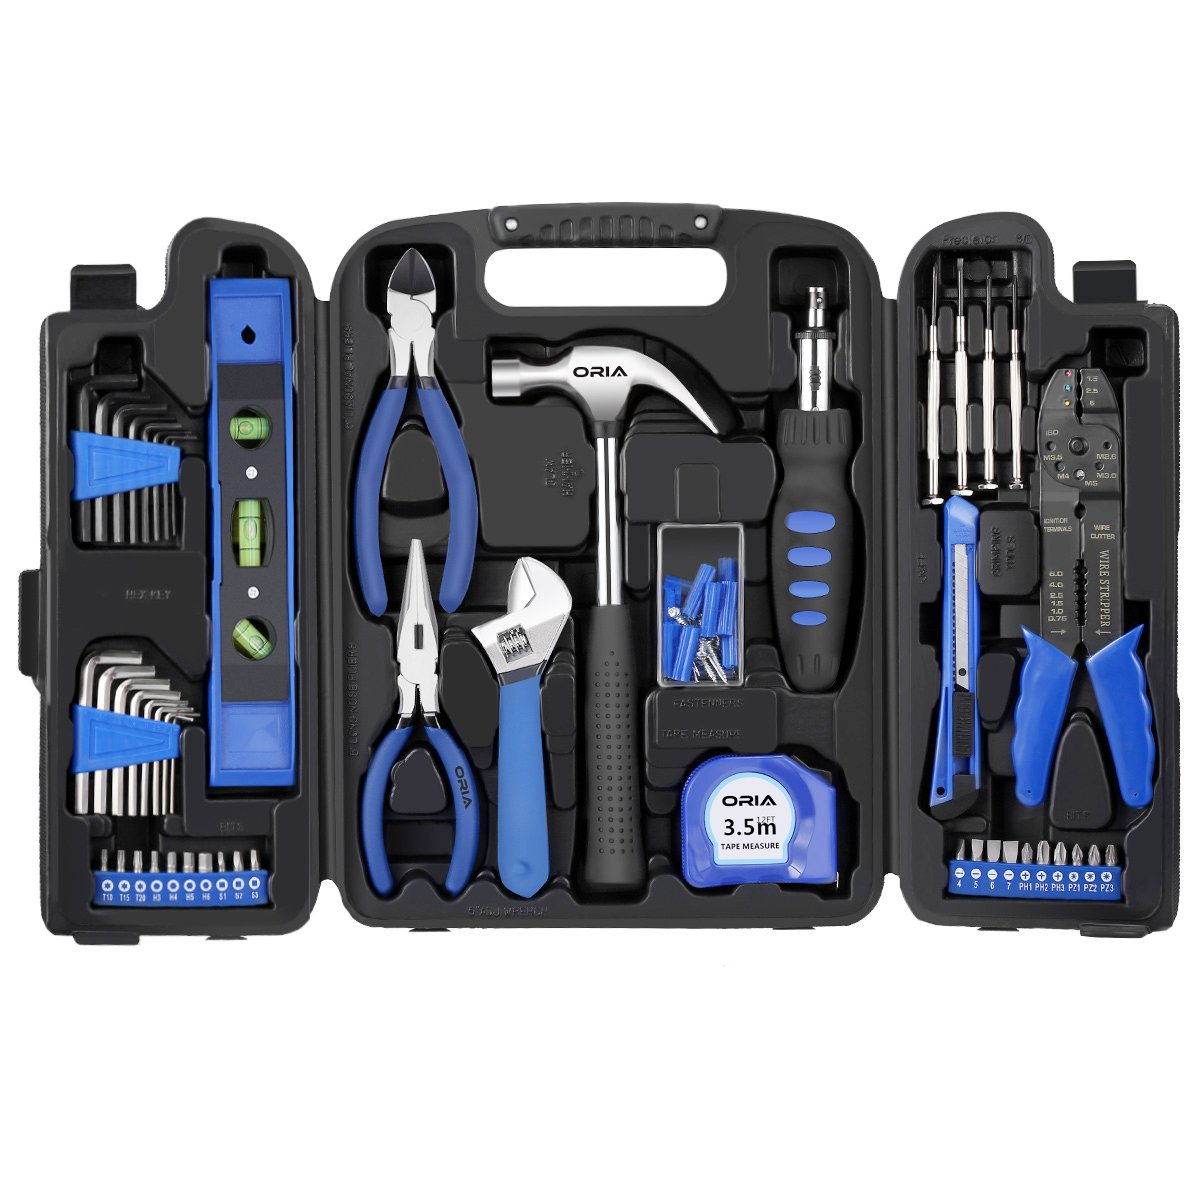 ORIA Household Tool Kit, 129 Pieces Home Repair Tool Kit, Household Hand Tool Kit with Tool Box Storage Case, for iPad/iPhone/PC/Watch/Samsung/Tablet Computer/Other Electronic Devices